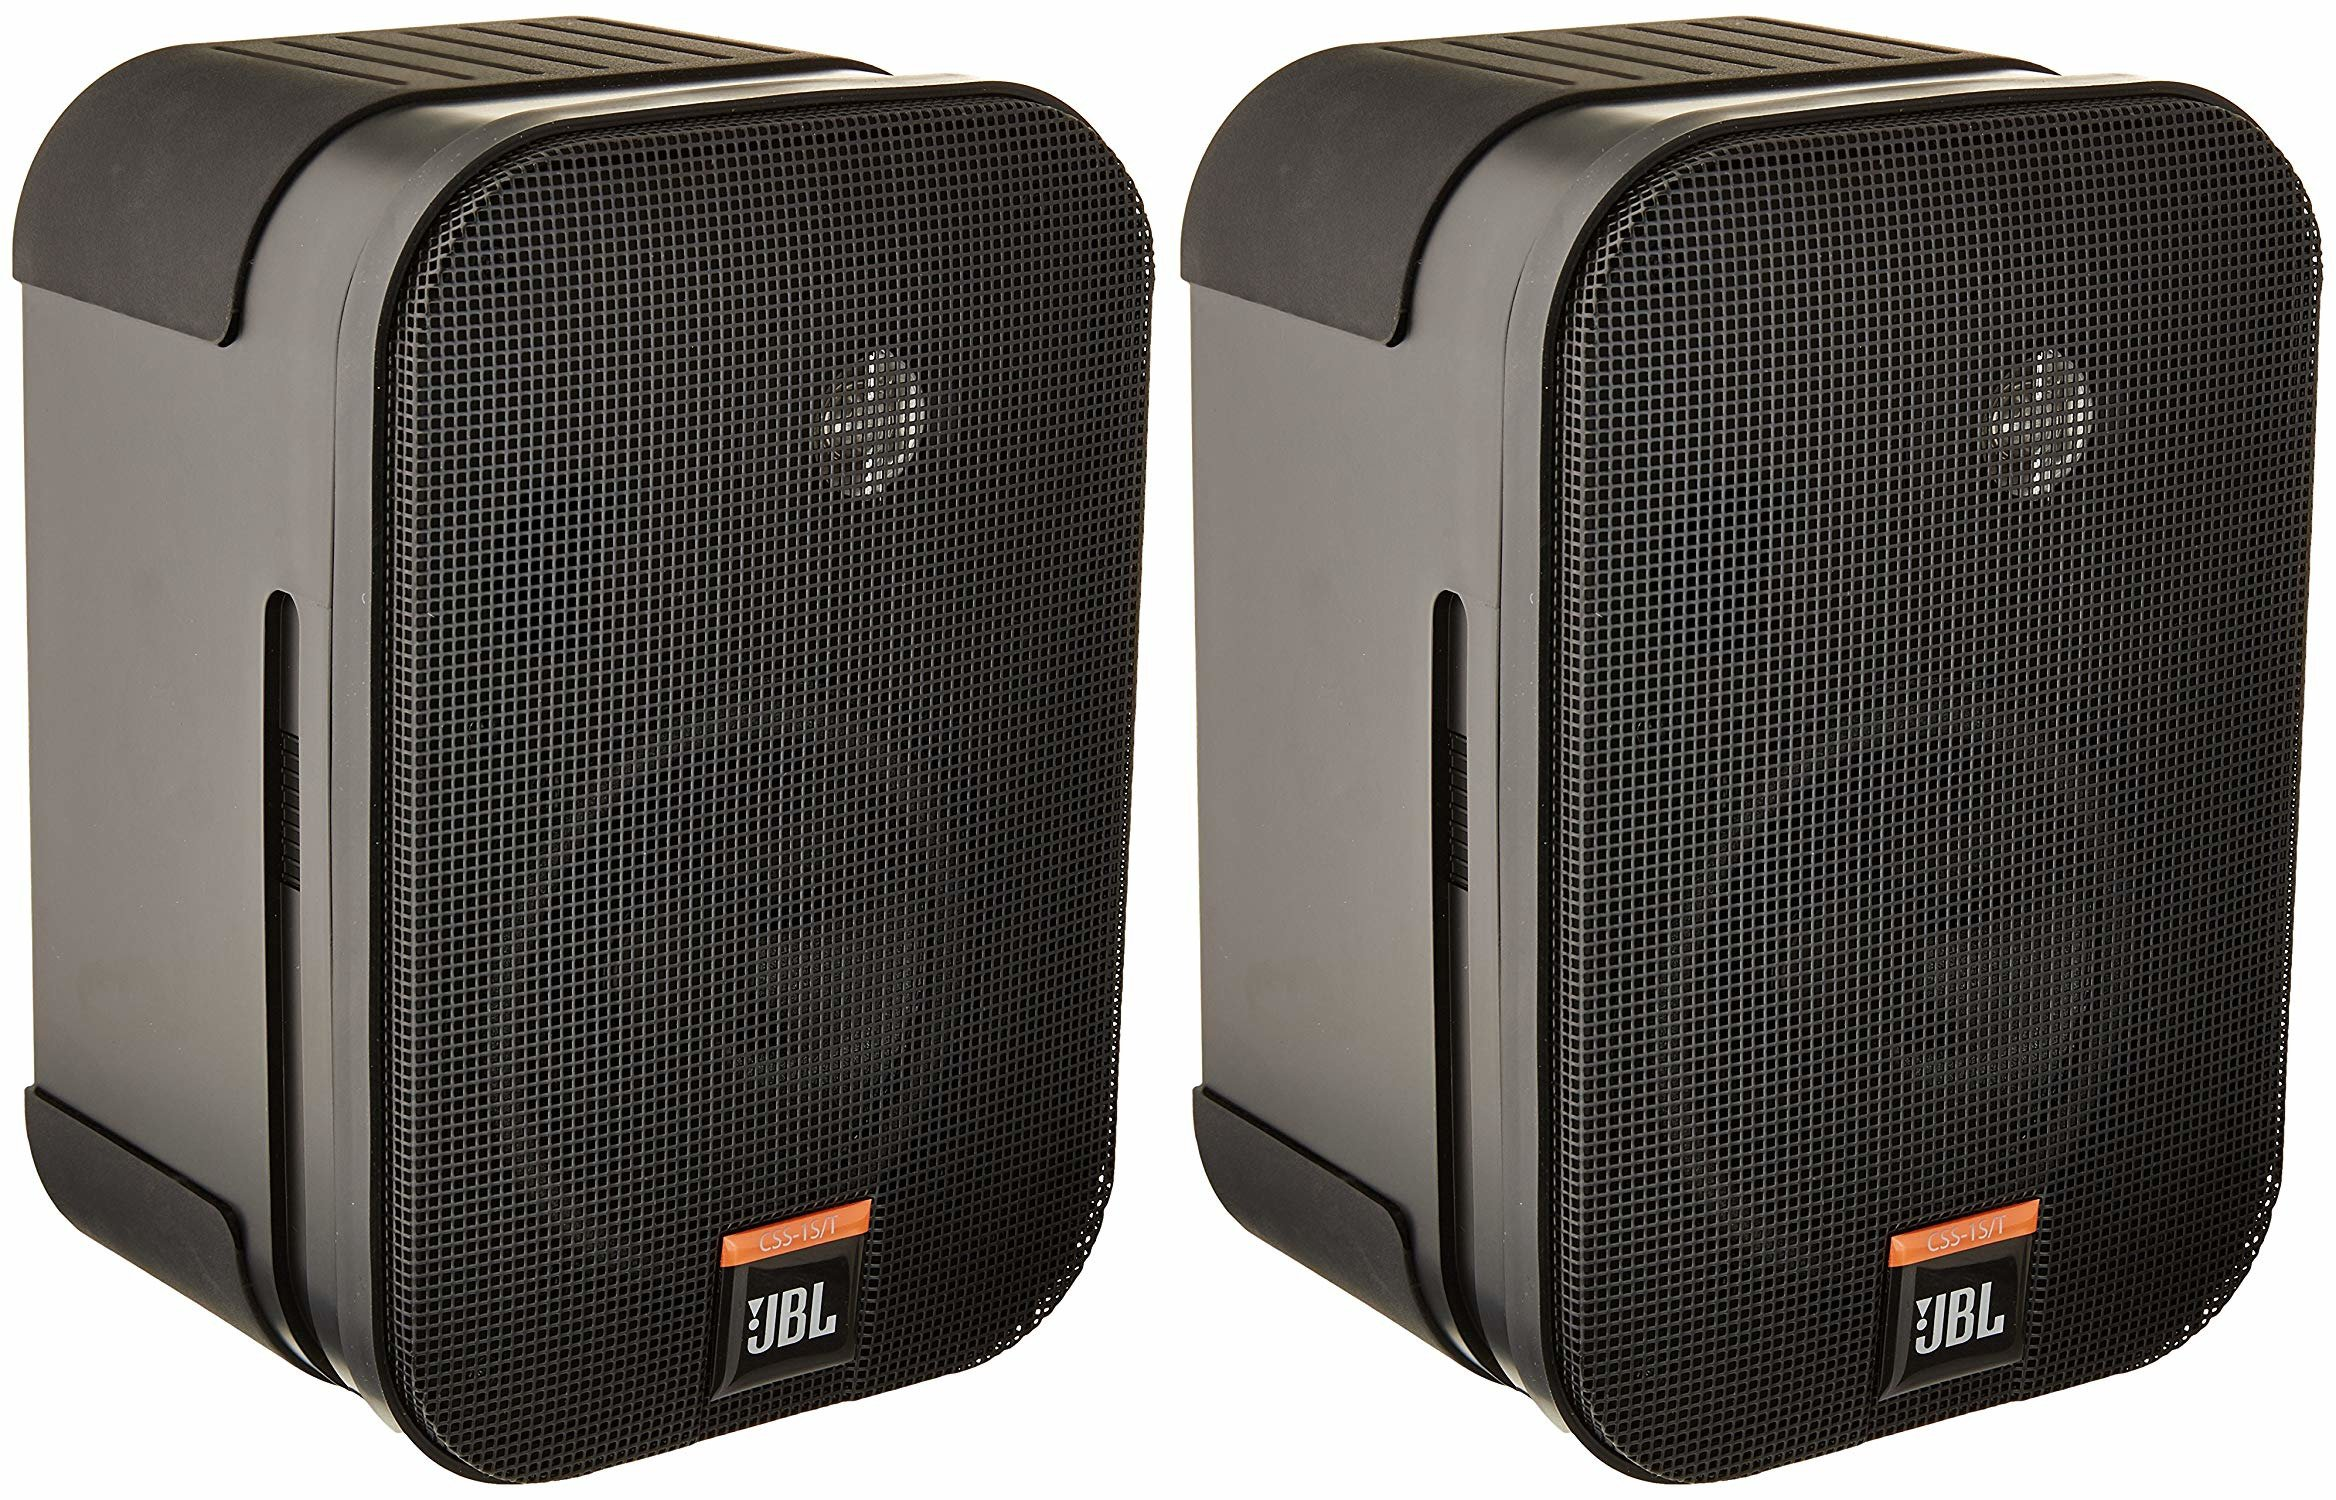 JBL CSS-1S/T Compact Two-Way 100V/70V/8-Ohm Loudspeaker, Black (sold as pair) by JBL Professional